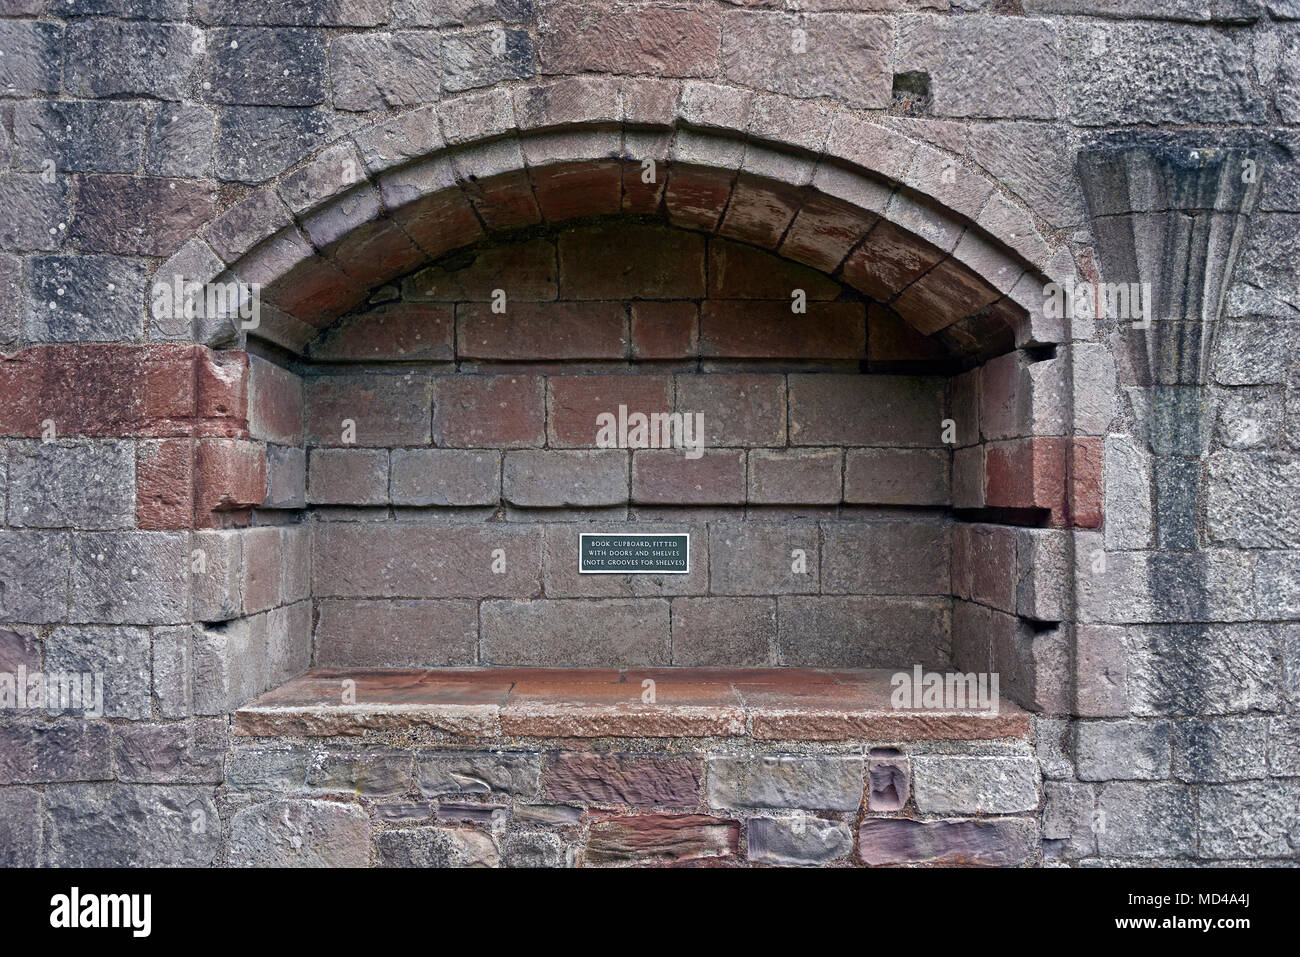 Detail of the Book Cupboard, which was fitted with doors and shelves. Dryburgh Abbey. Dryburgh, St.Boswells, Roxburghshire, Scottish Borders, Scotland - Stock Image